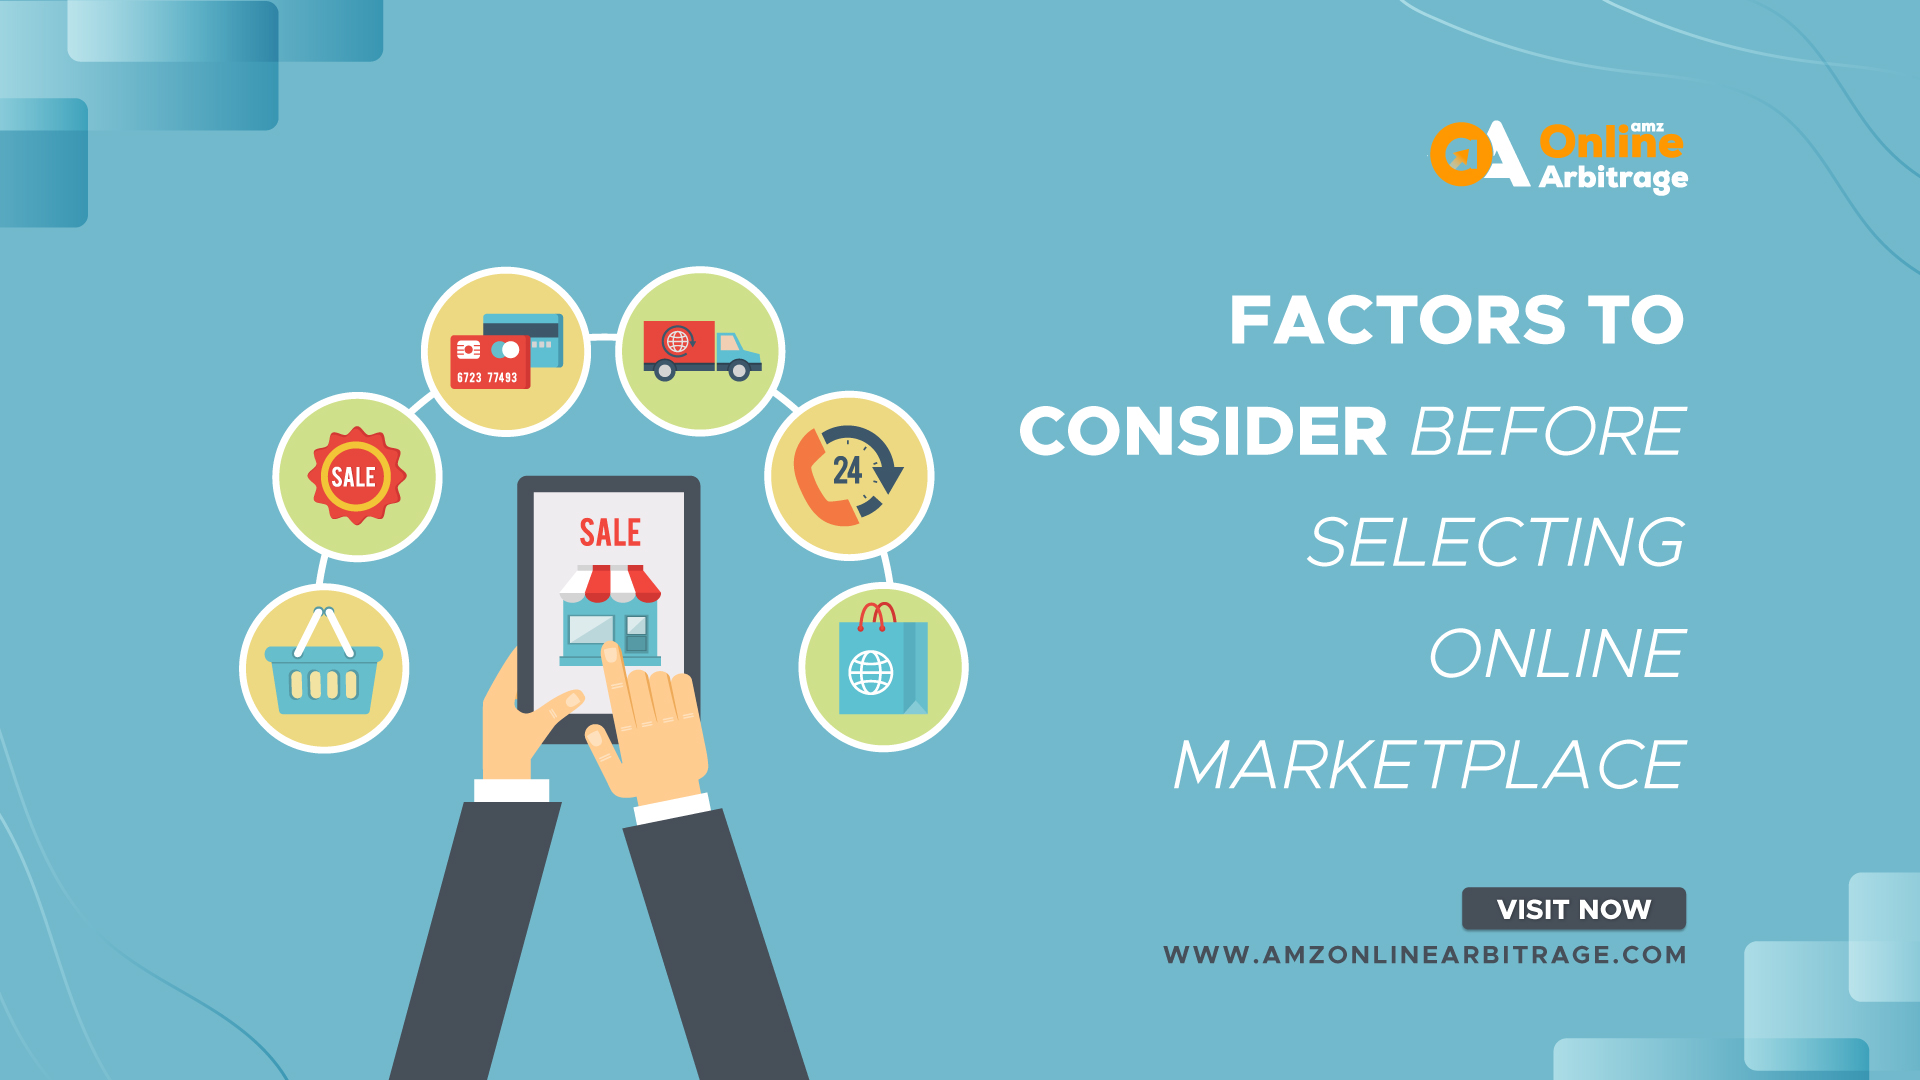 FACTORS TO CONSIDER BEFORE SELECTING ONLINE MARKETPLACE